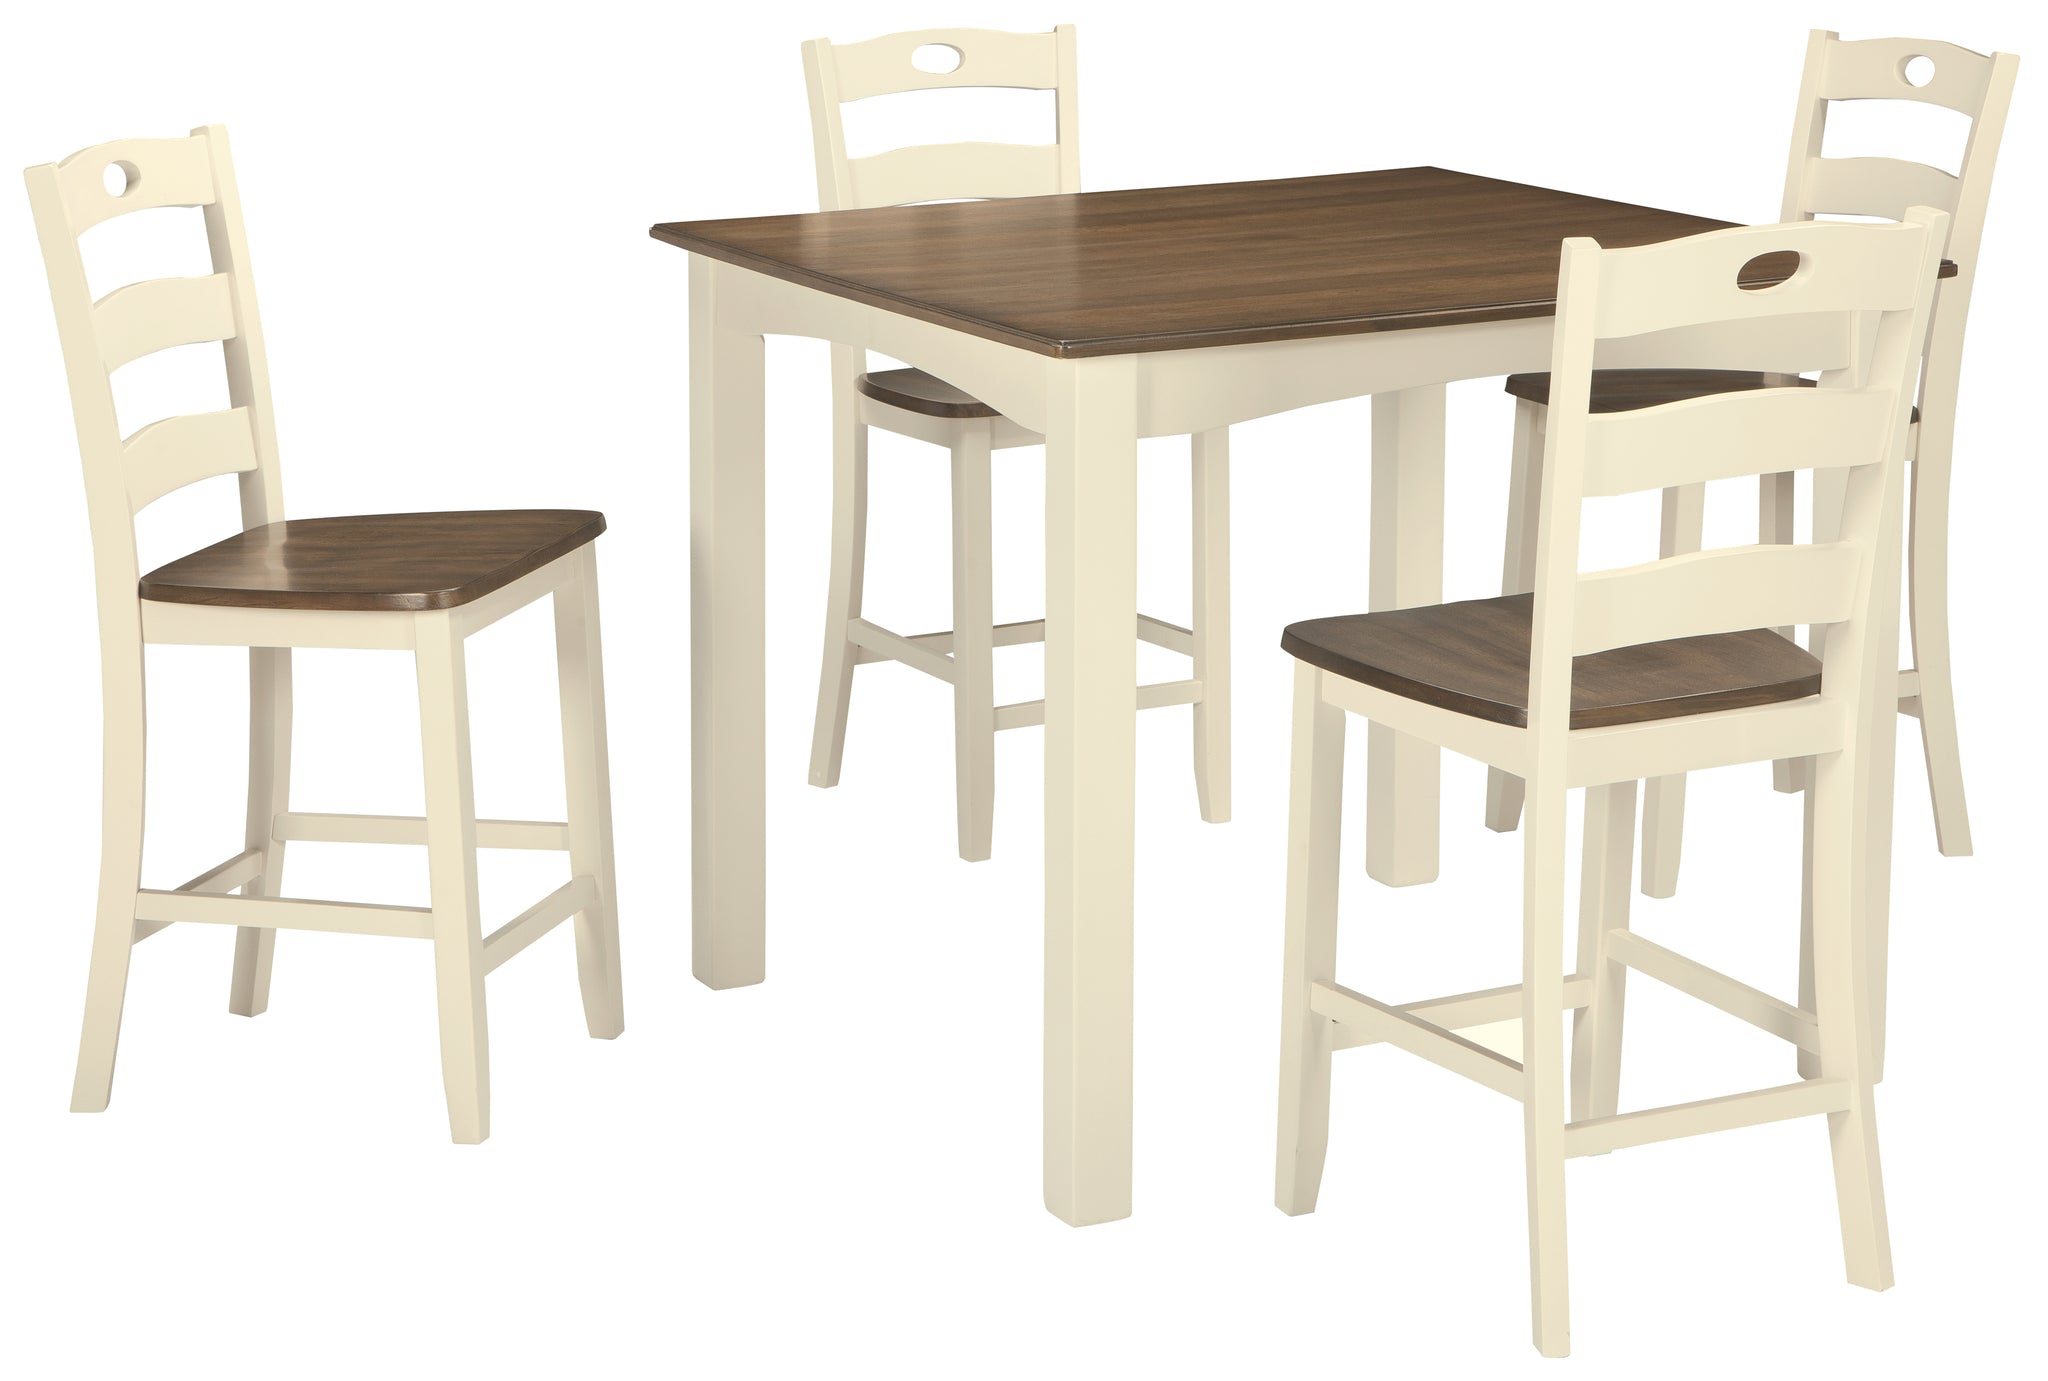 Woodanville Counter Height Dining Room Table And Bar Stools Set Of